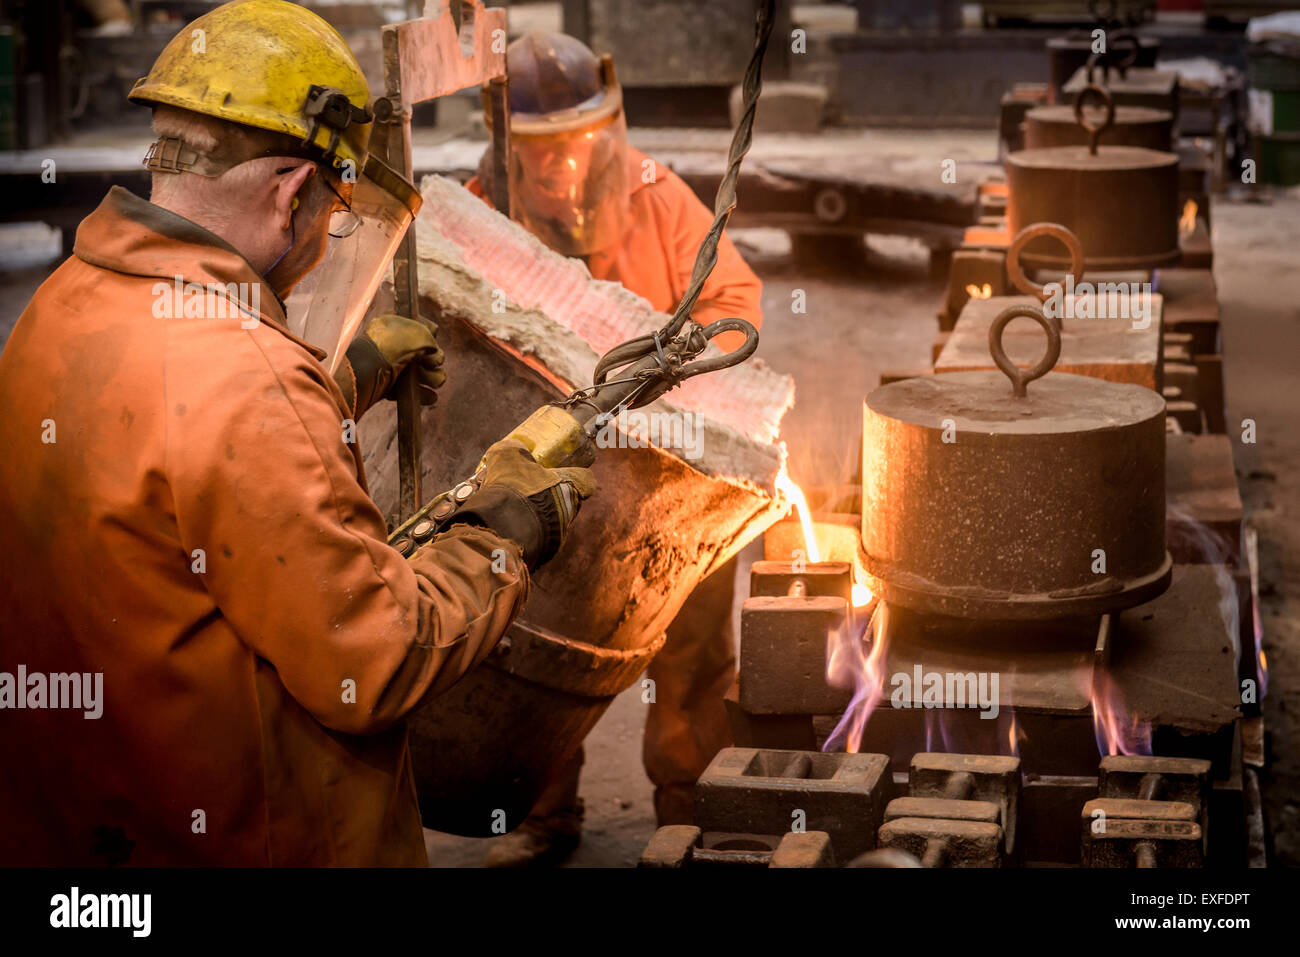 Workers pouring molten metal from flask in foundry - Stock Image